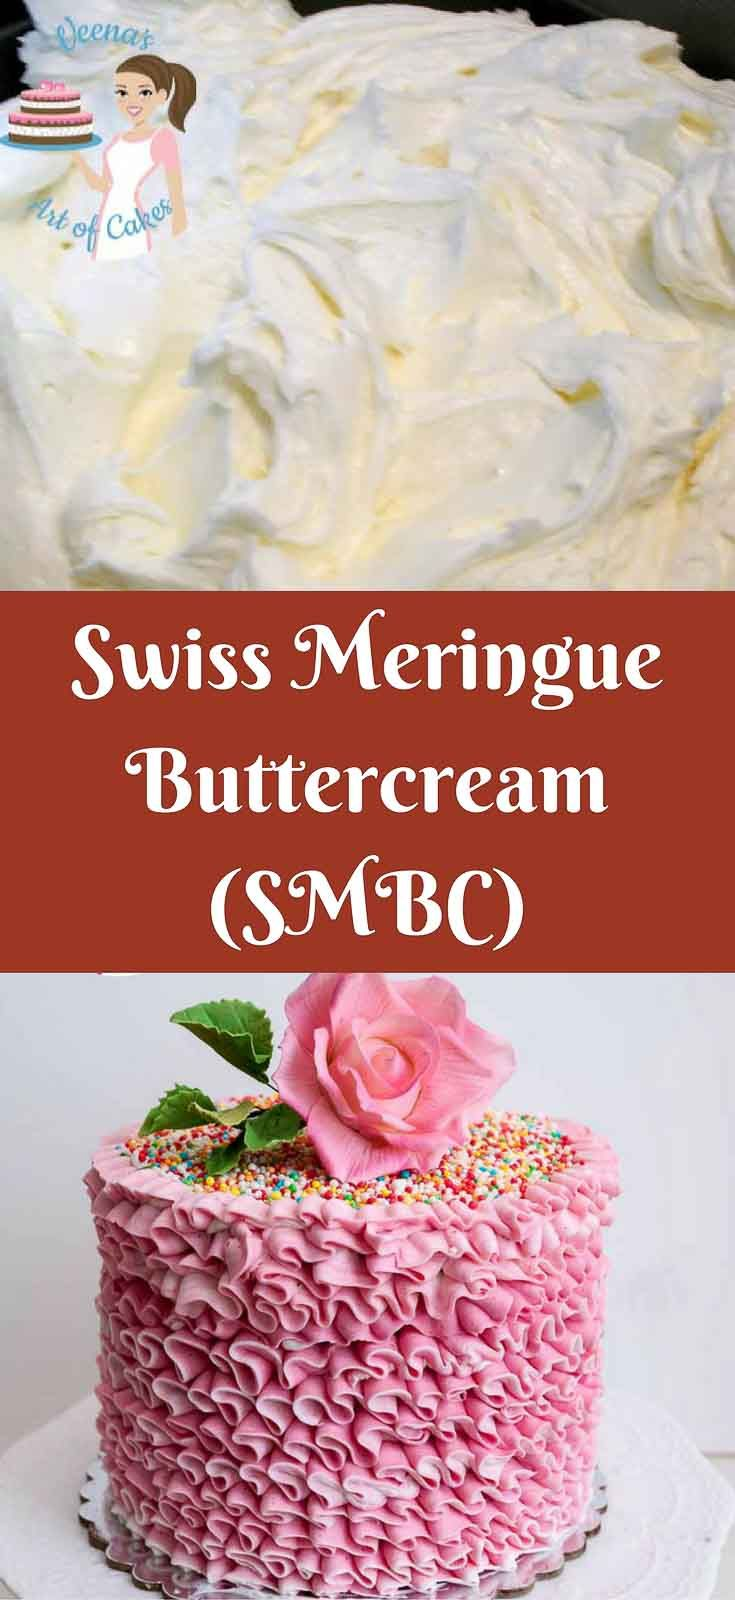 Swiss Meringue Buttercream (SMBC) is made with egg white ...